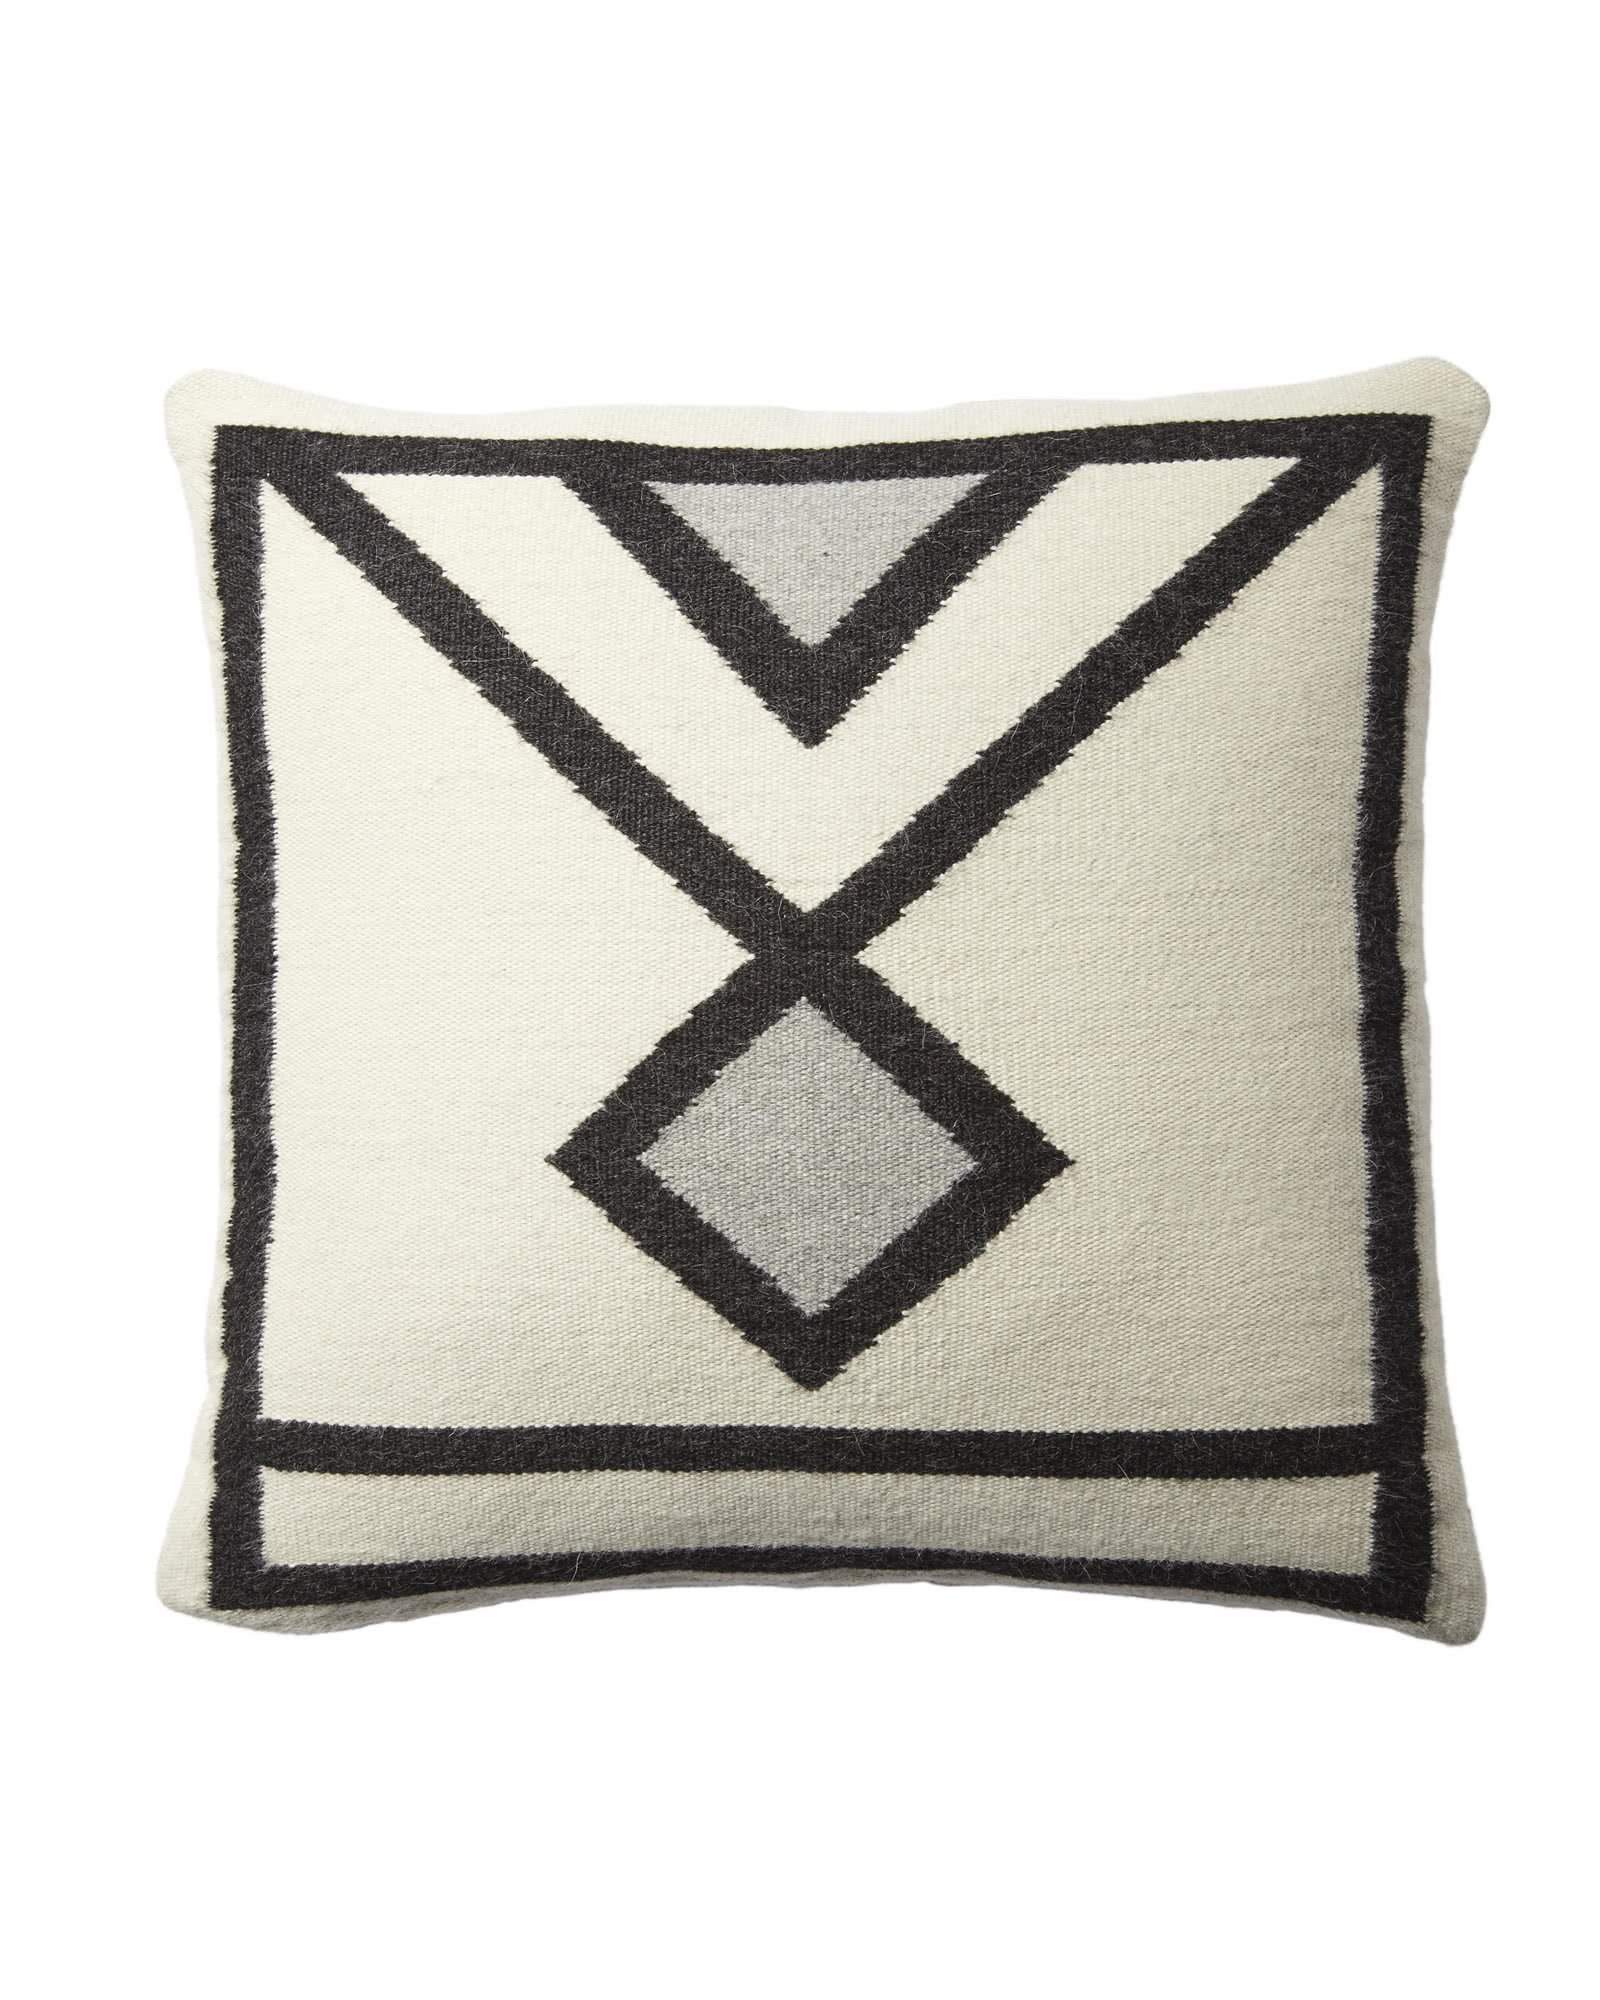 Nolan Pillow Cover